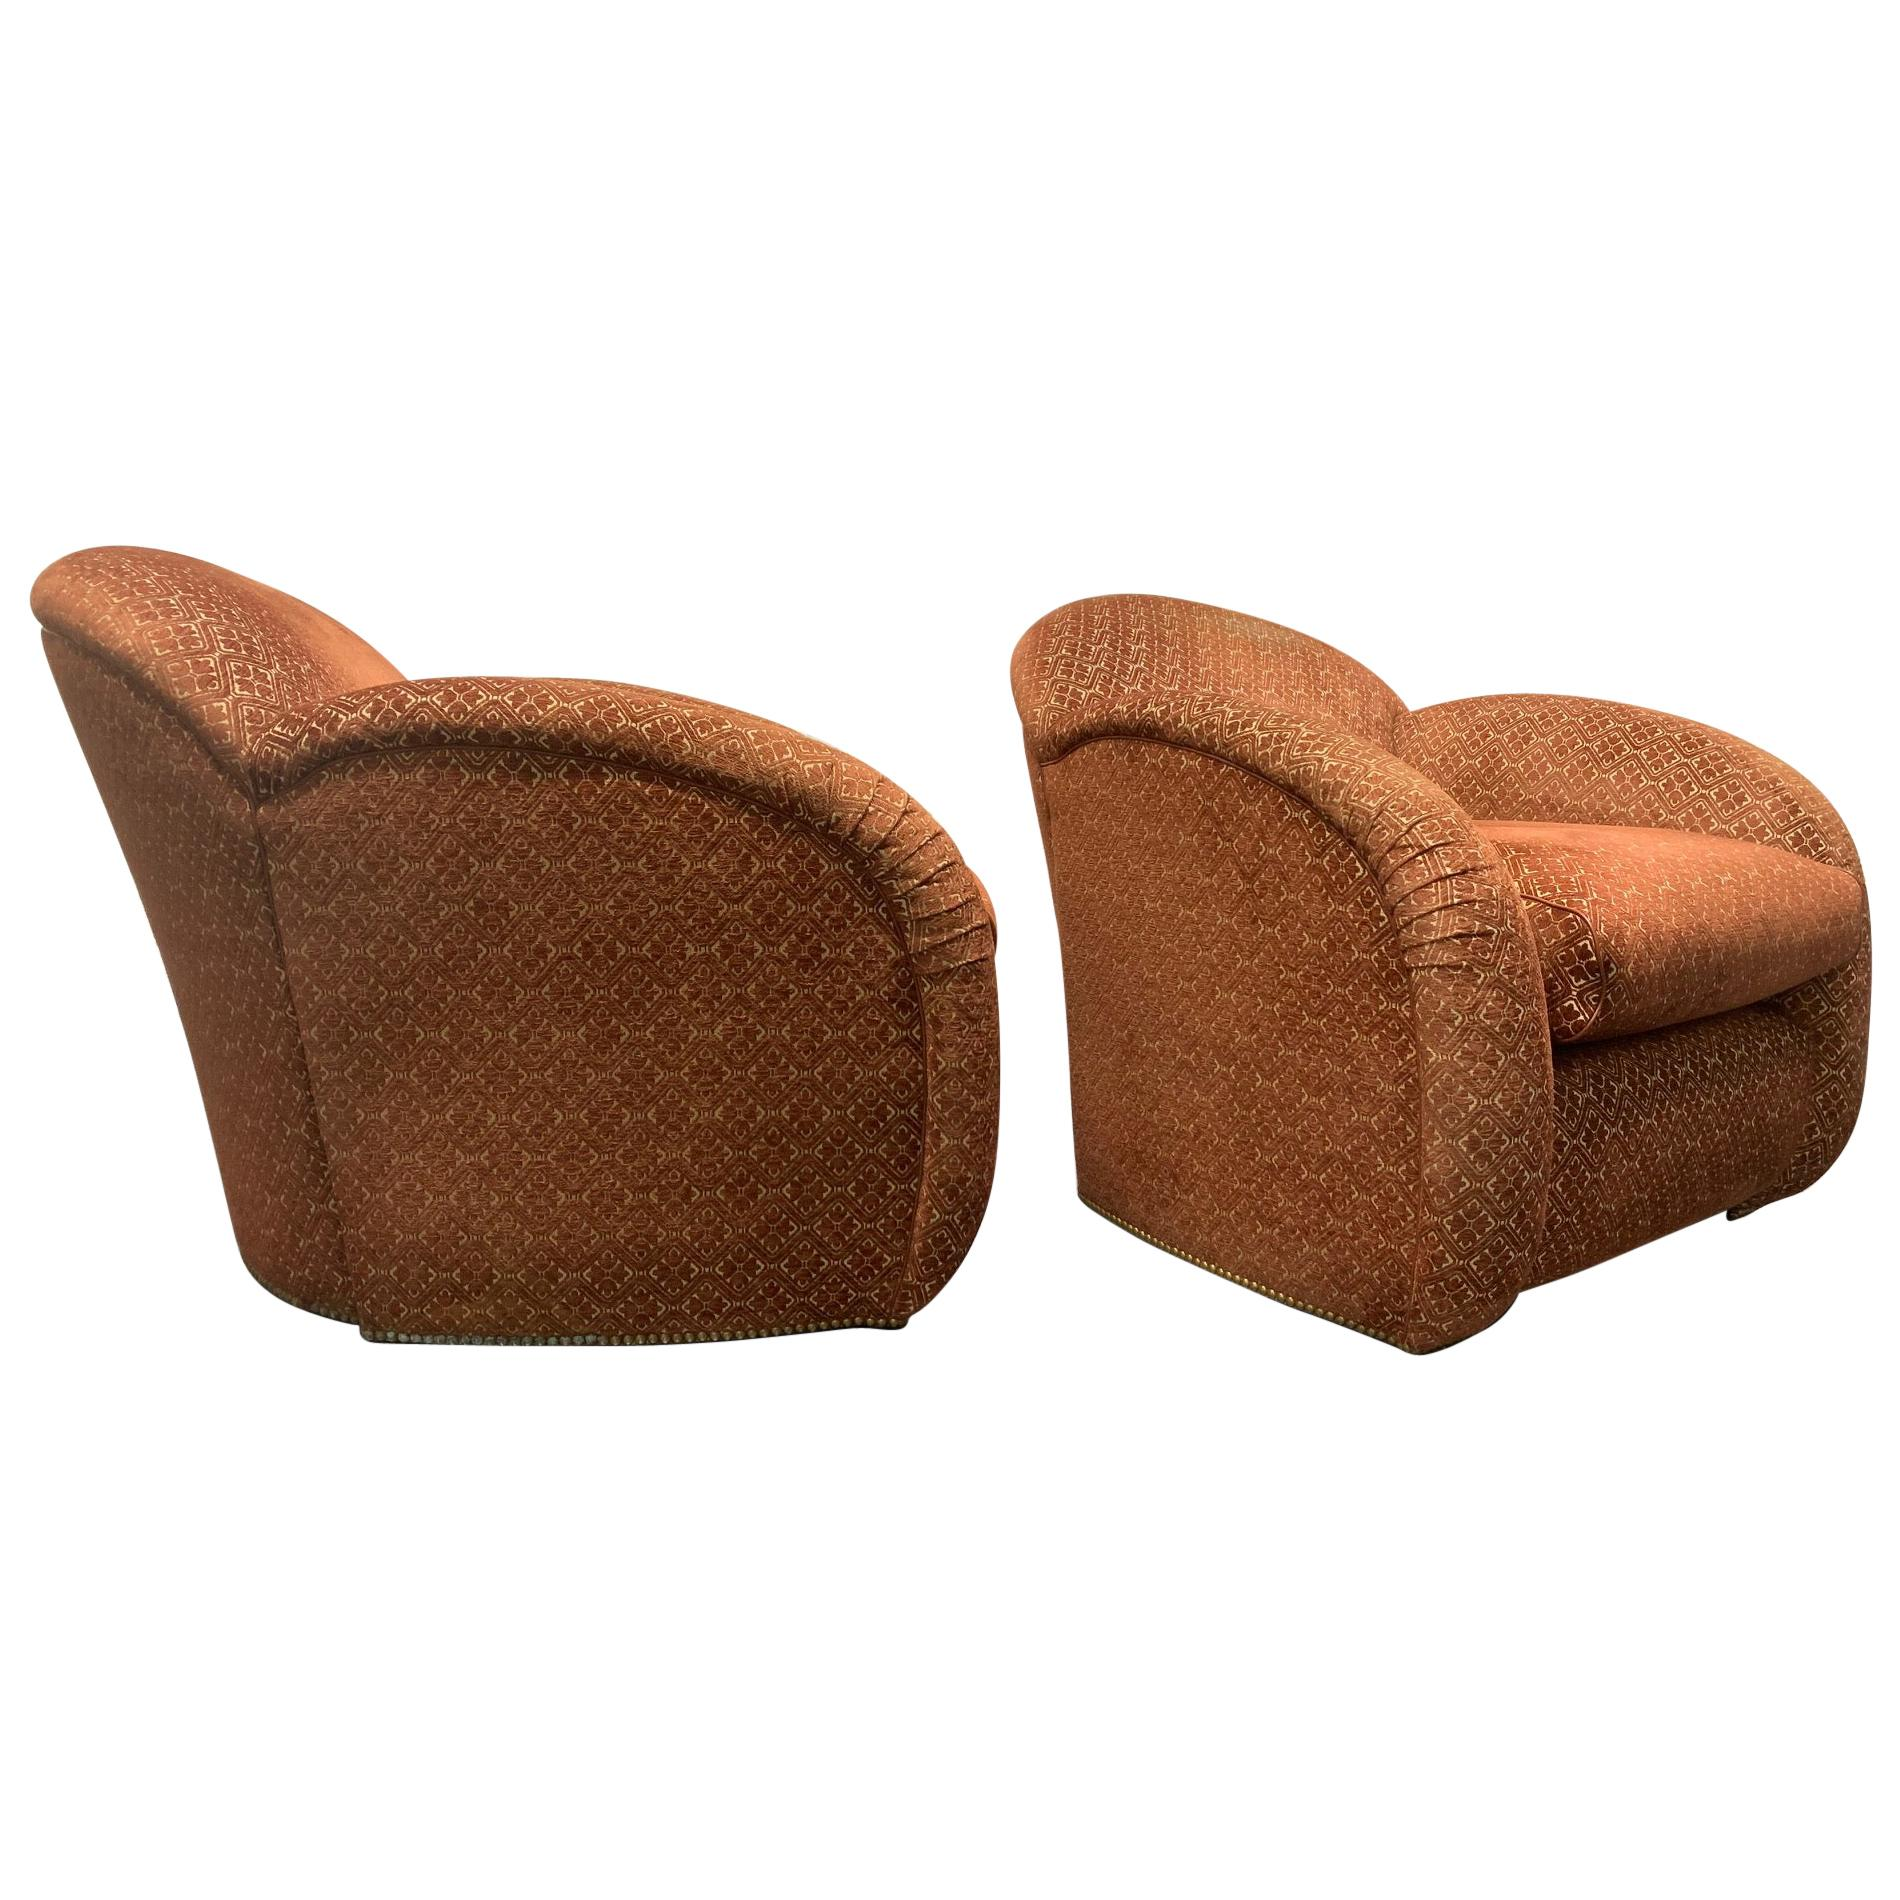 Pair of Art Deco Club Chairs with Ottoman